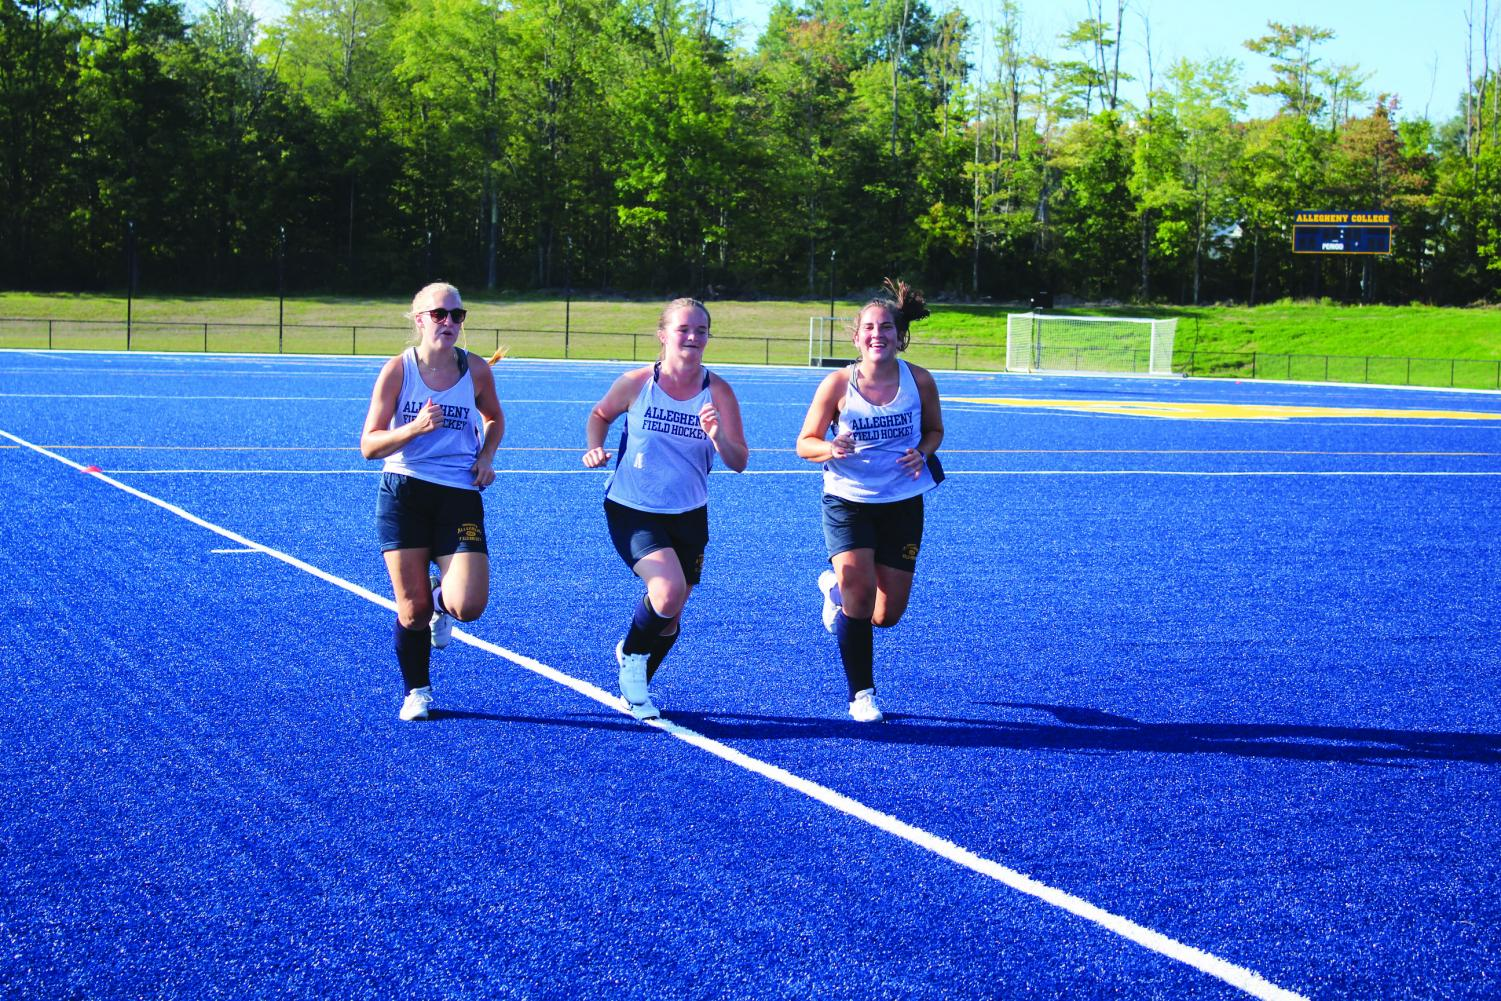 Allegheny College Women's Field Hockey teammates Becca Winton, '23, Kinsley Greenlaw, '23, and Hannah Sharp, '23, run on Sept. 5, 2019 at Robertson Athletic Complex during practice.